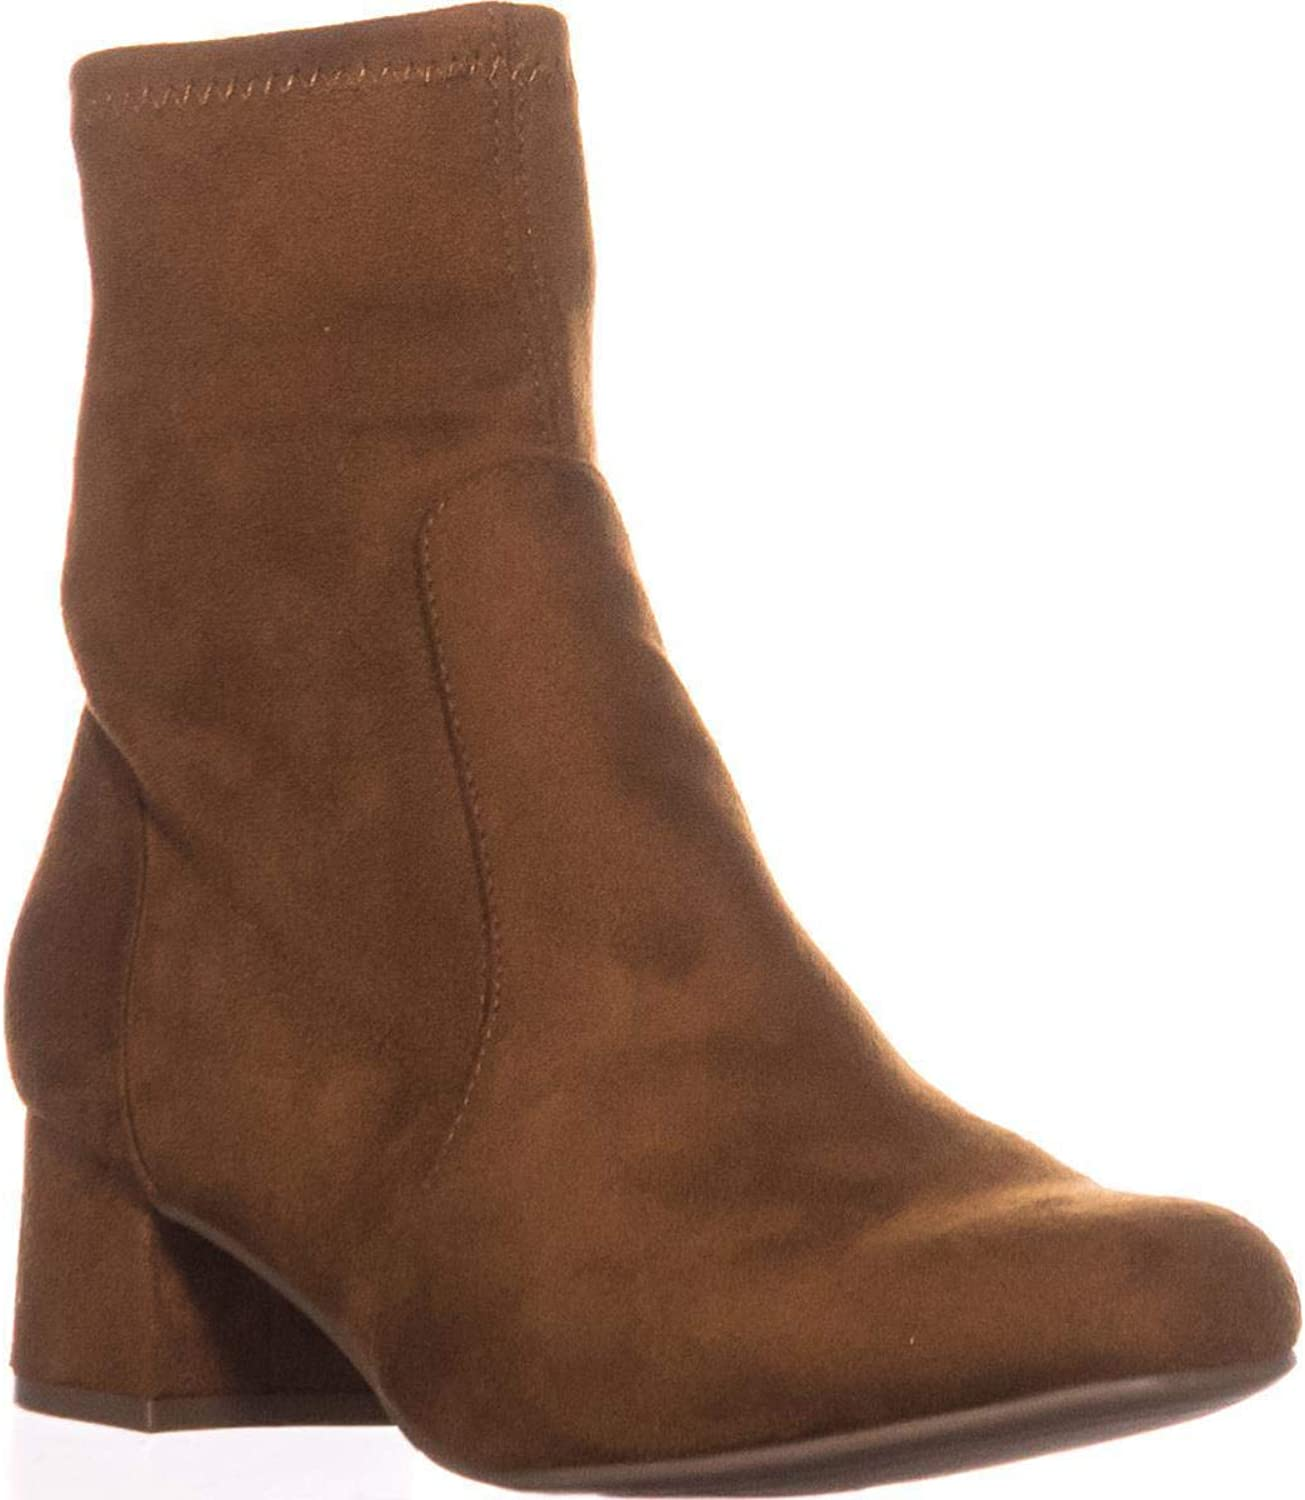 Naturalizer Daley Block-Heel Ankle Boots, Brandy